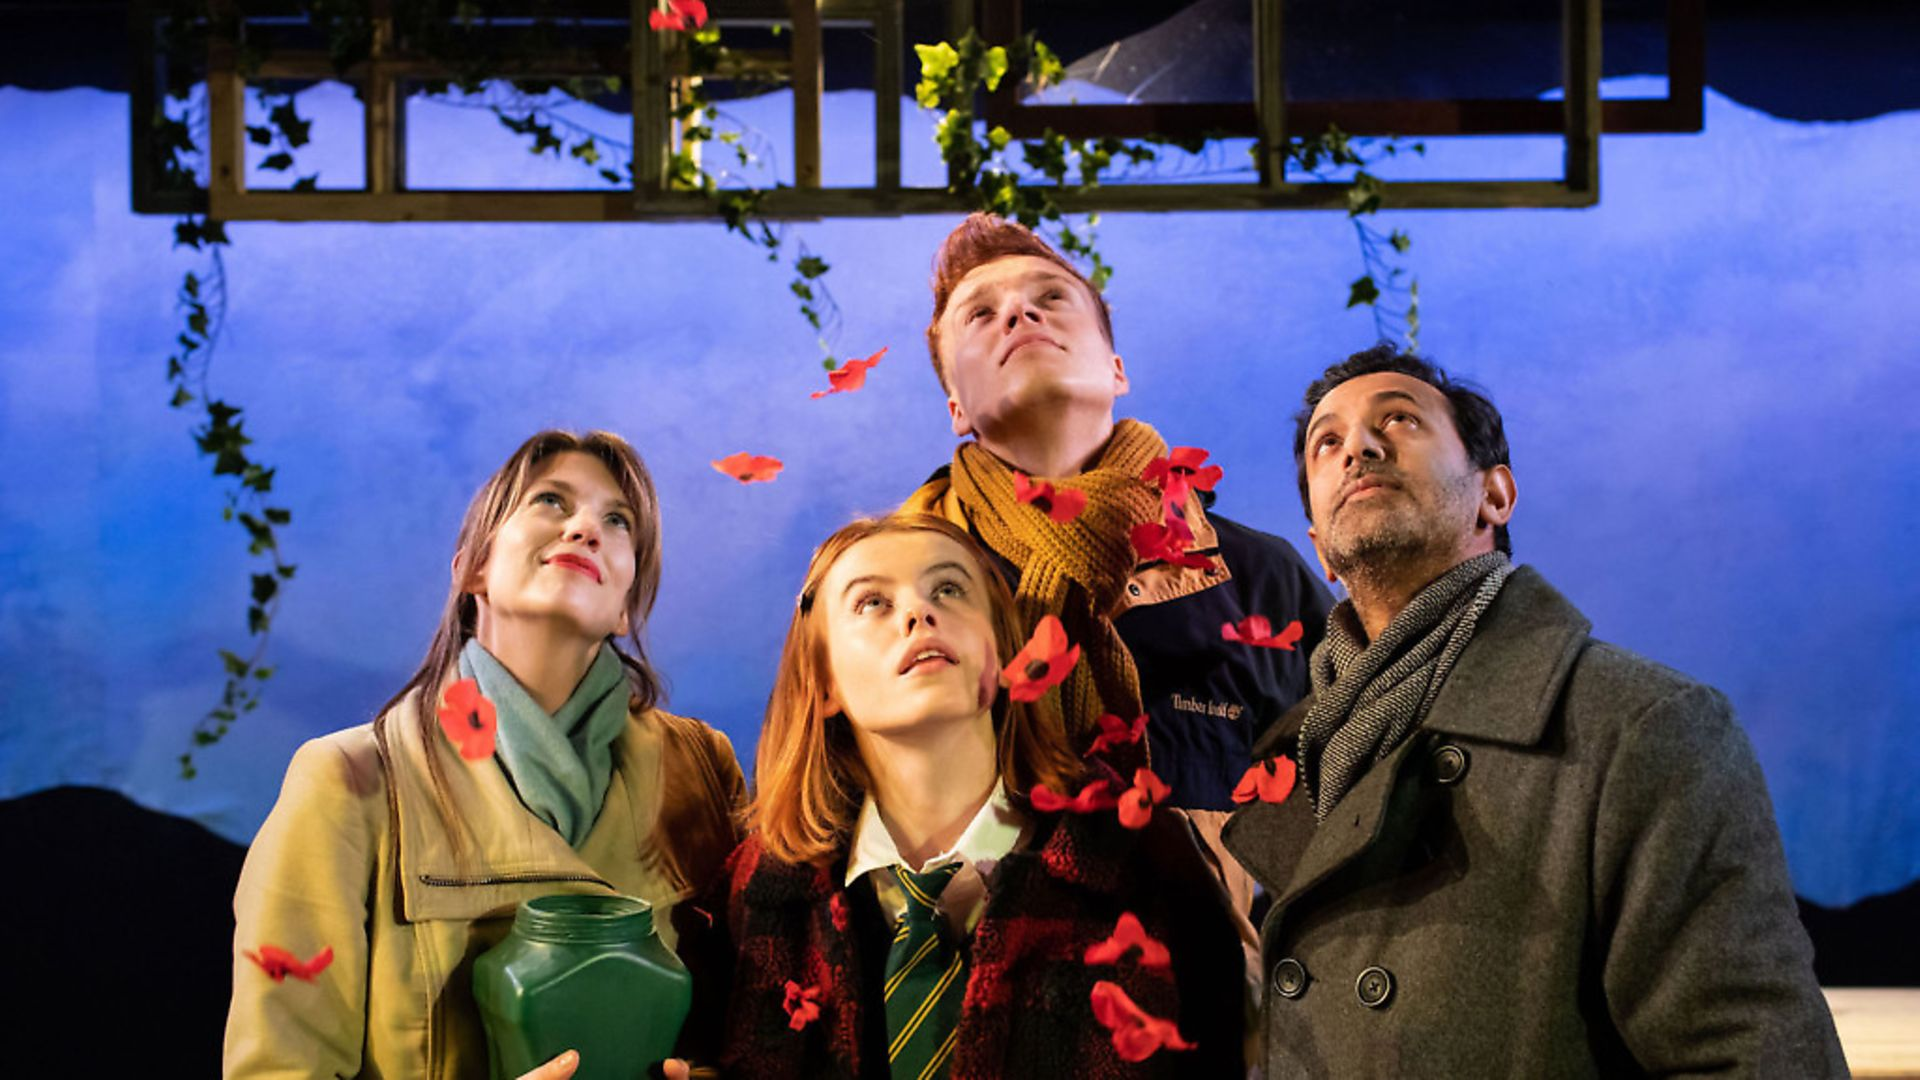 (Left to right) Claire Goose (Thea) Will Fletcher (Lenny) Rosie Day (Billie) Navin Chowdhry (Gil). The Girl Who Fell. Photo: Helen Maybanks - Credit: Helen Maybanks